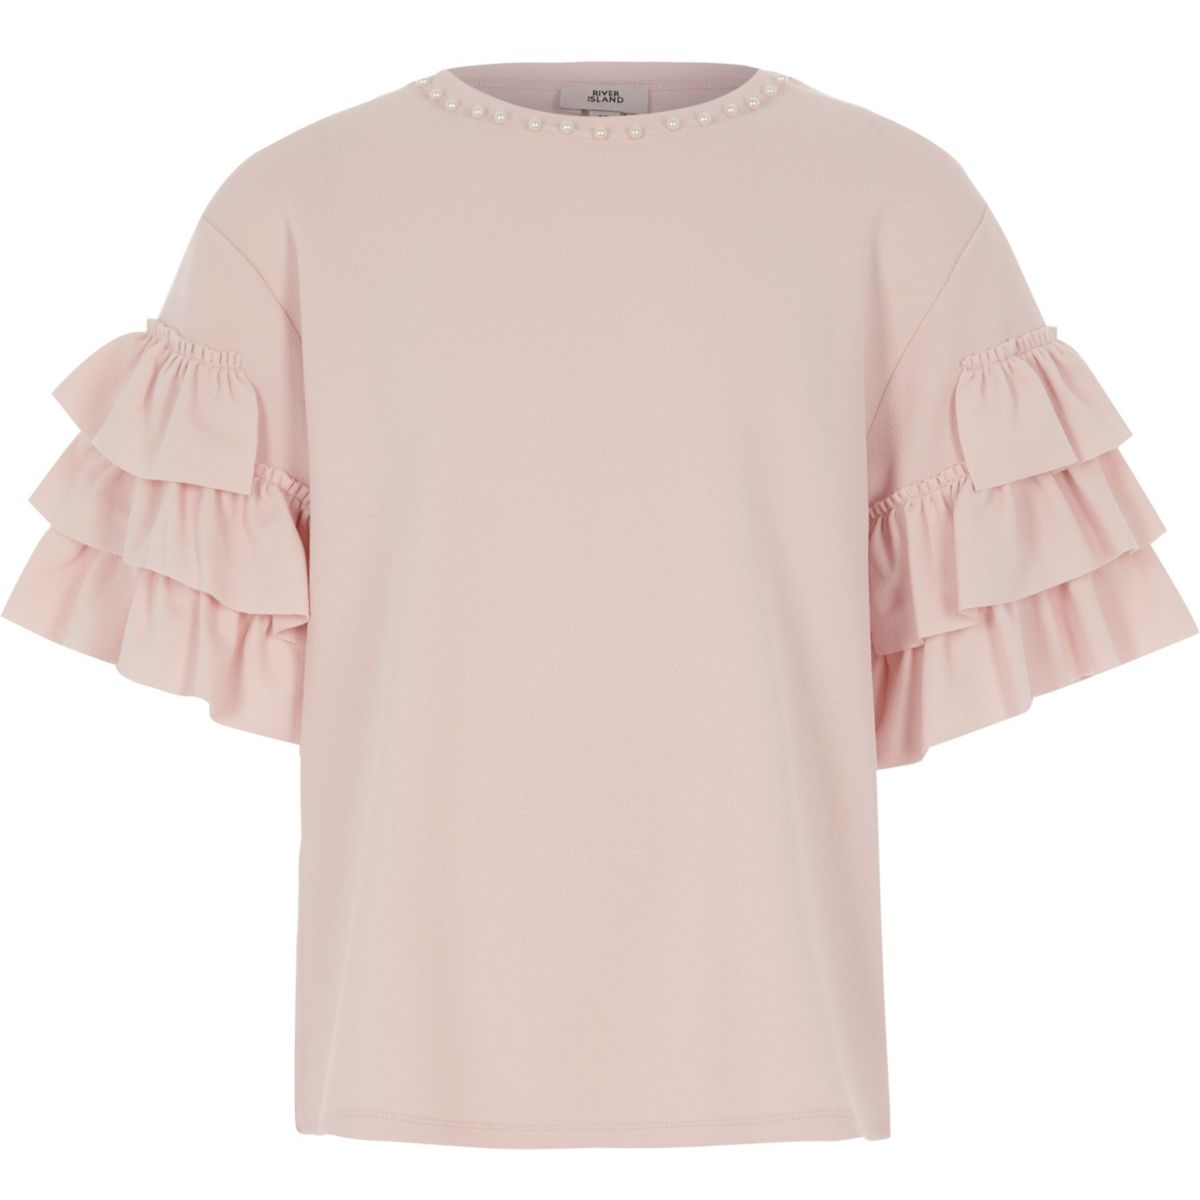 Girls pink pearl tiered frill sleeve t shirt t shirts for Frill sleeve t shirt